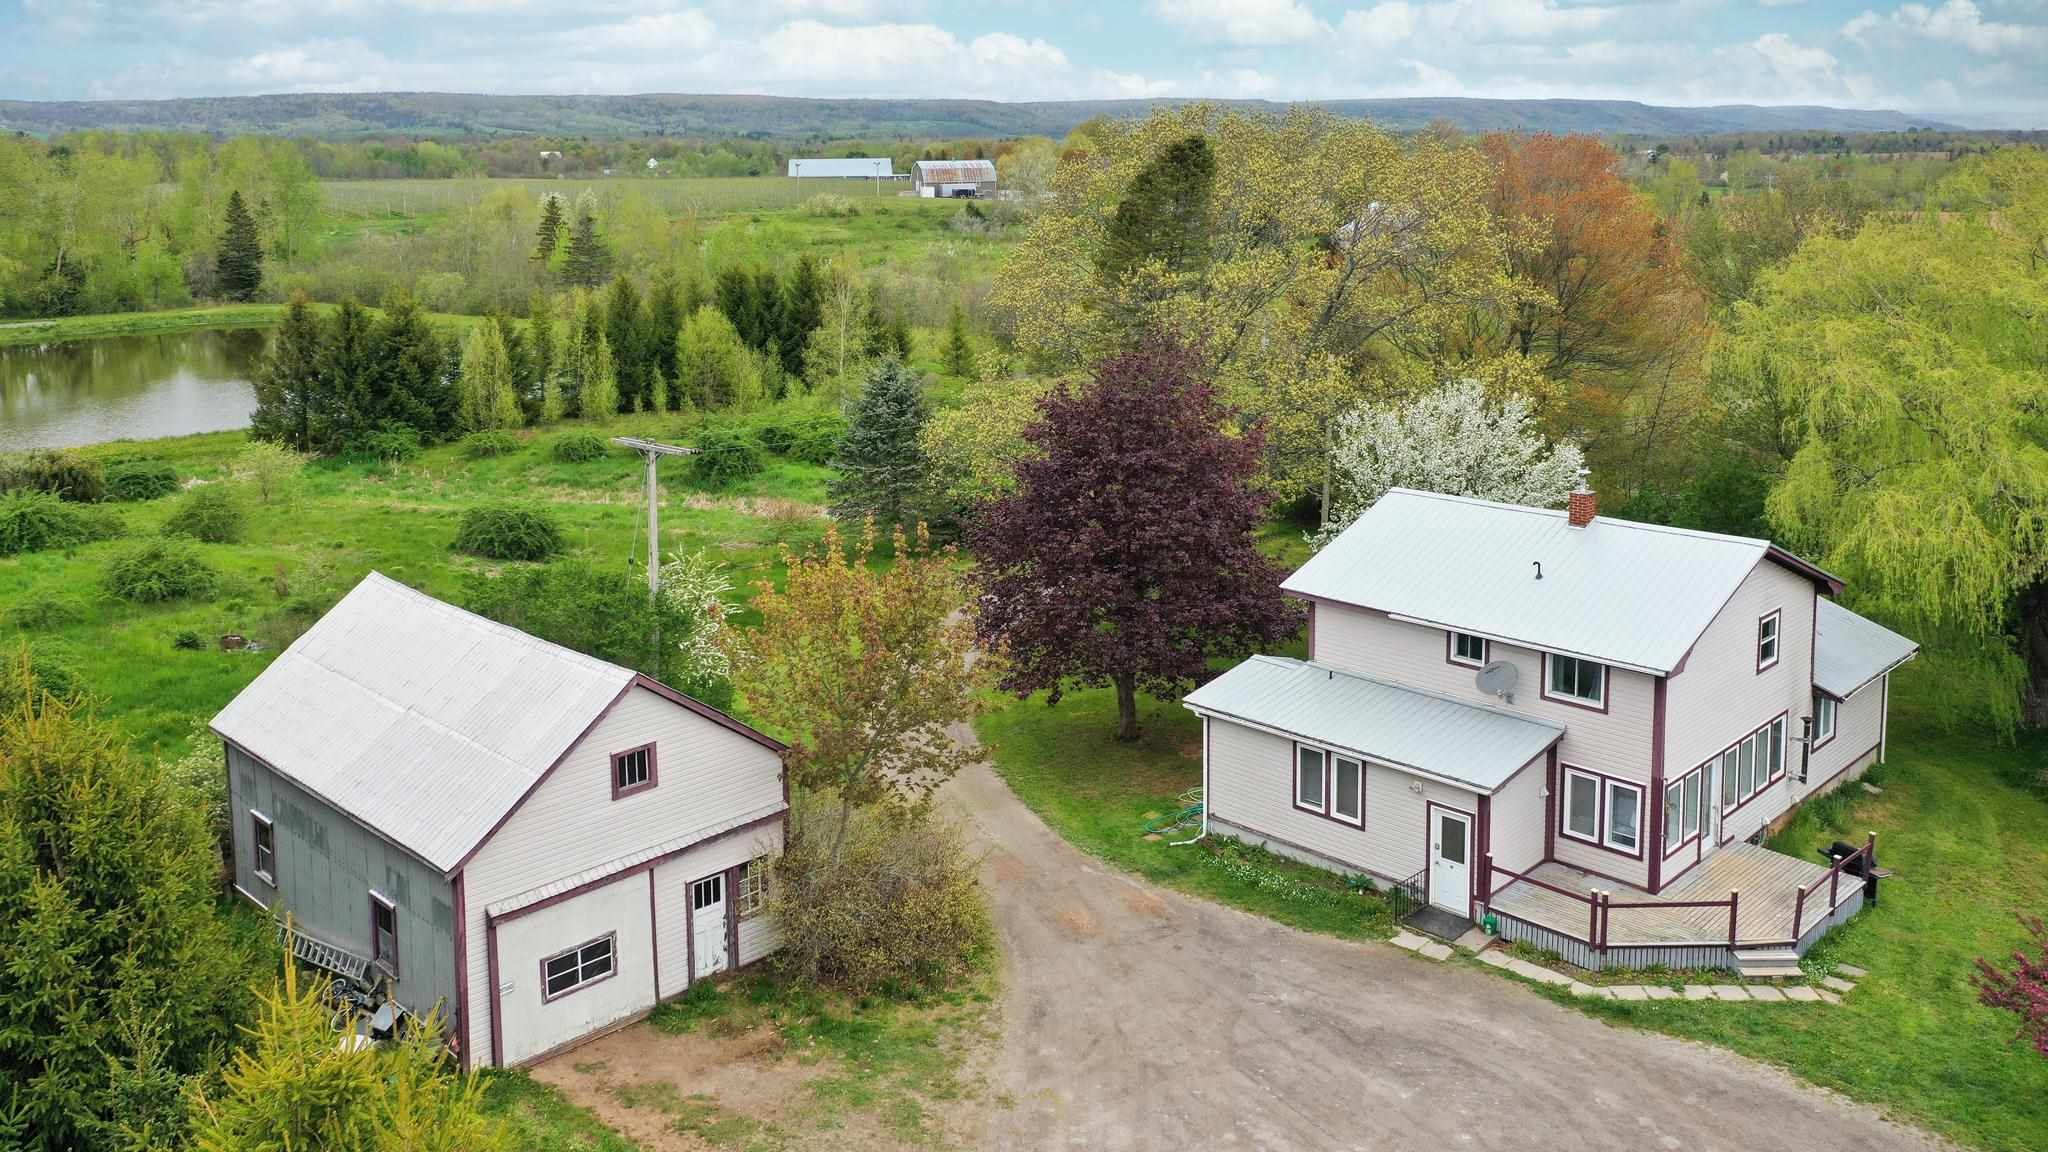 Main Photo: 2379 Black Rock Road in Grafton: 404-Kings County Residential for sale (Annapolis Valley)  : MLS®# 202112476